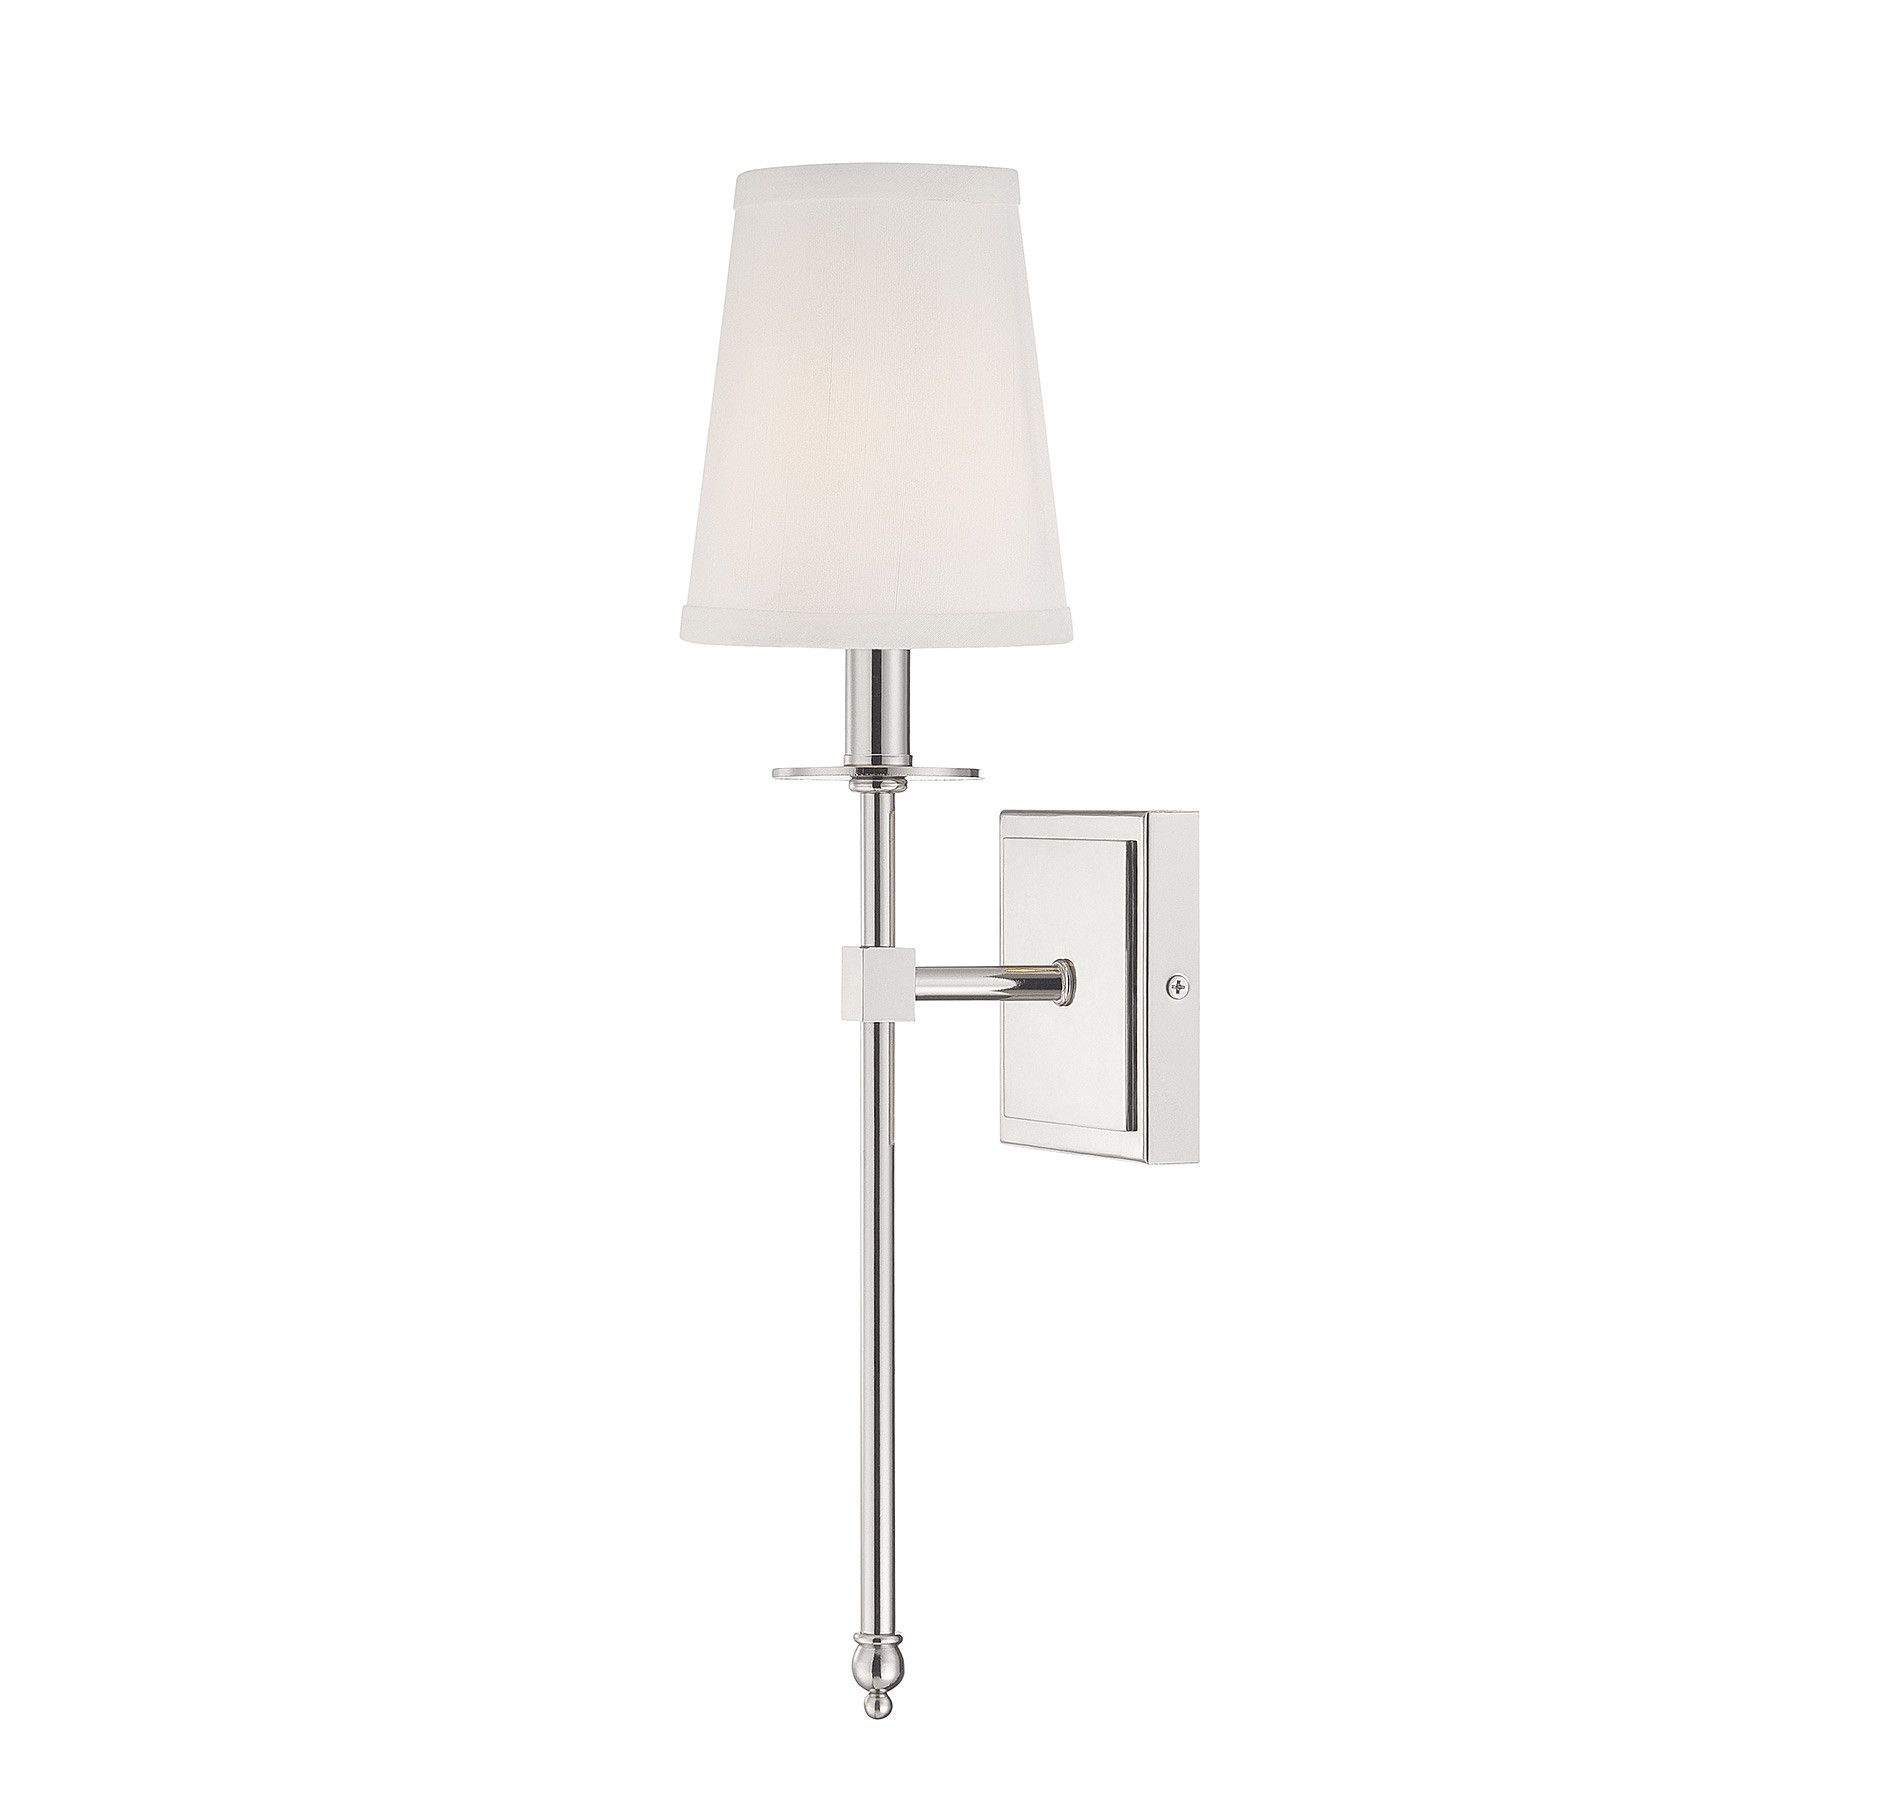 Elegant 1 Light Monroe Wall Sconce In Polished Nickel With Soft Fabric White Shade  By Savoy House